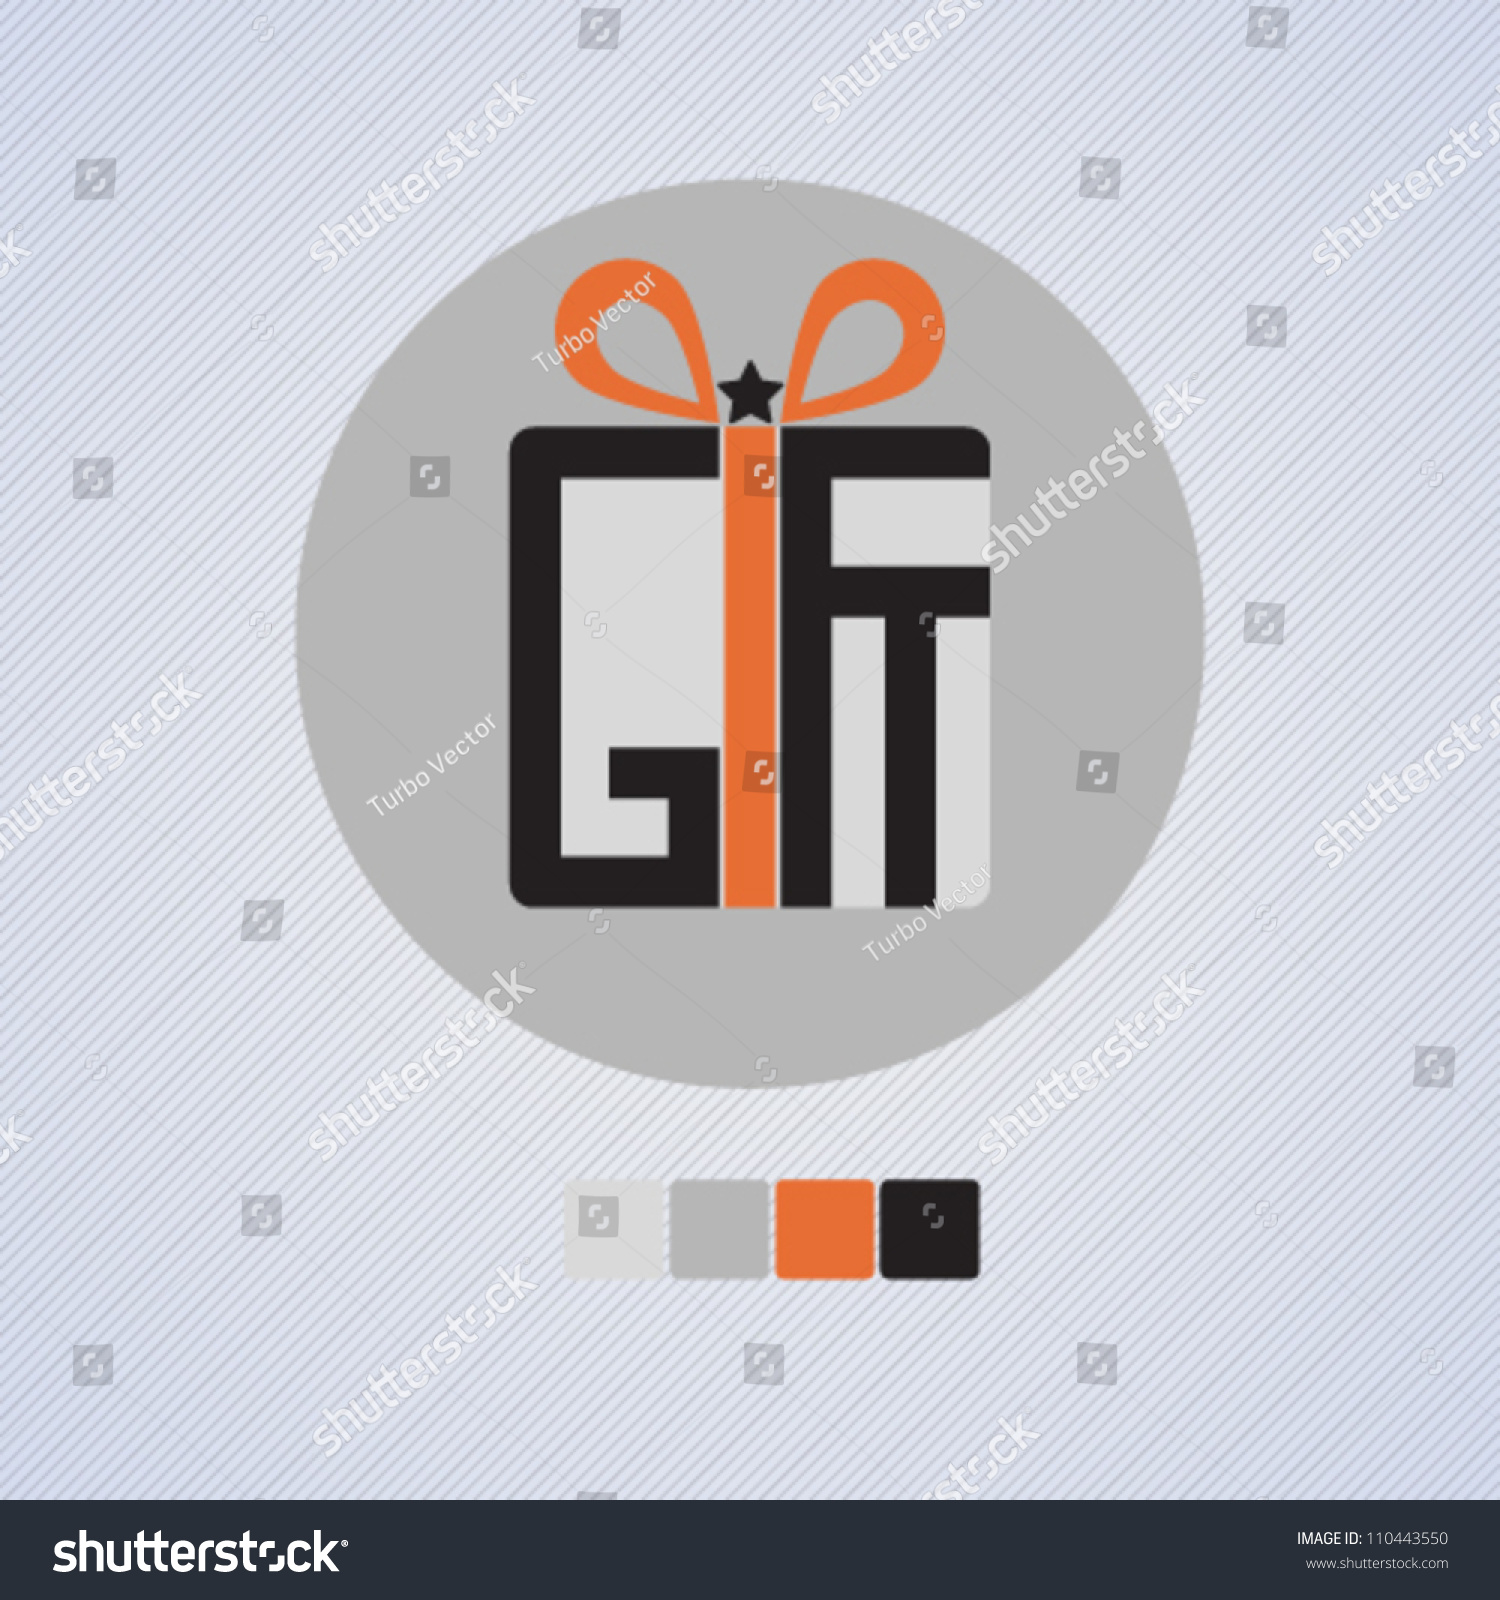 Stylized simple gift icon gift word stock vector 110443550 stylized and simple gift icon with gift word vector illustration negle Gallery